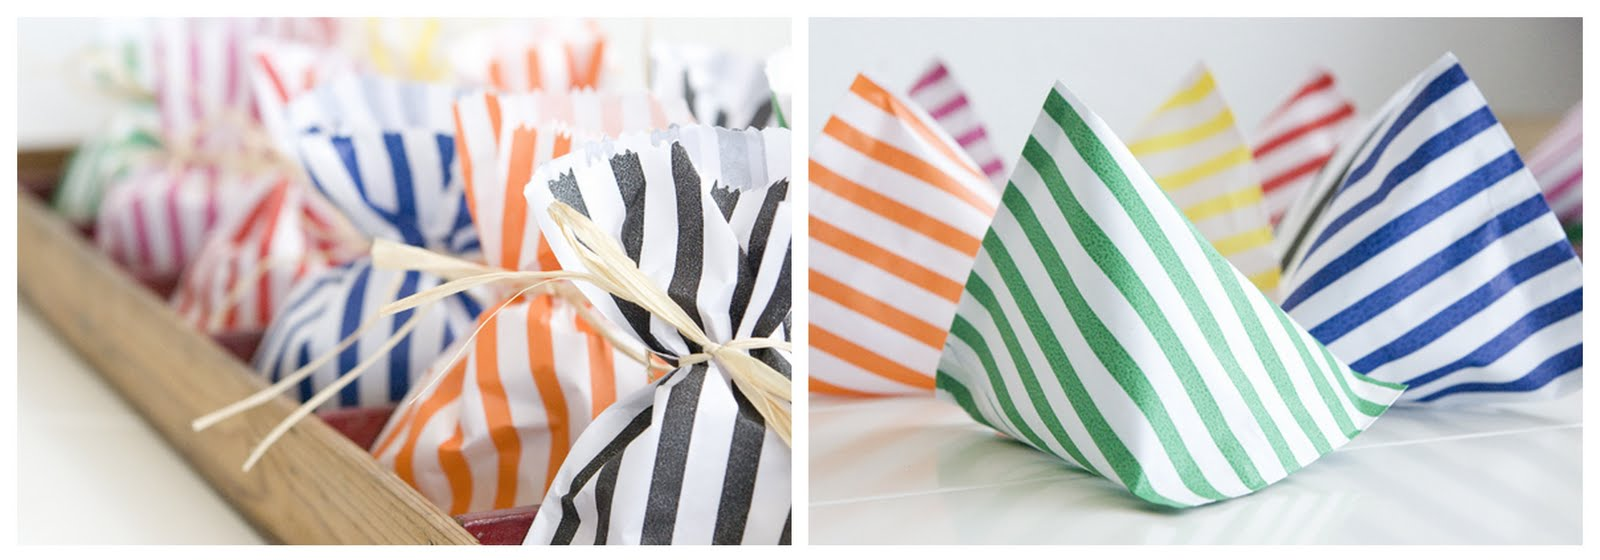 Wedding Blog UK ~ Wedding Ideas ~ Before The Big Day: Favours